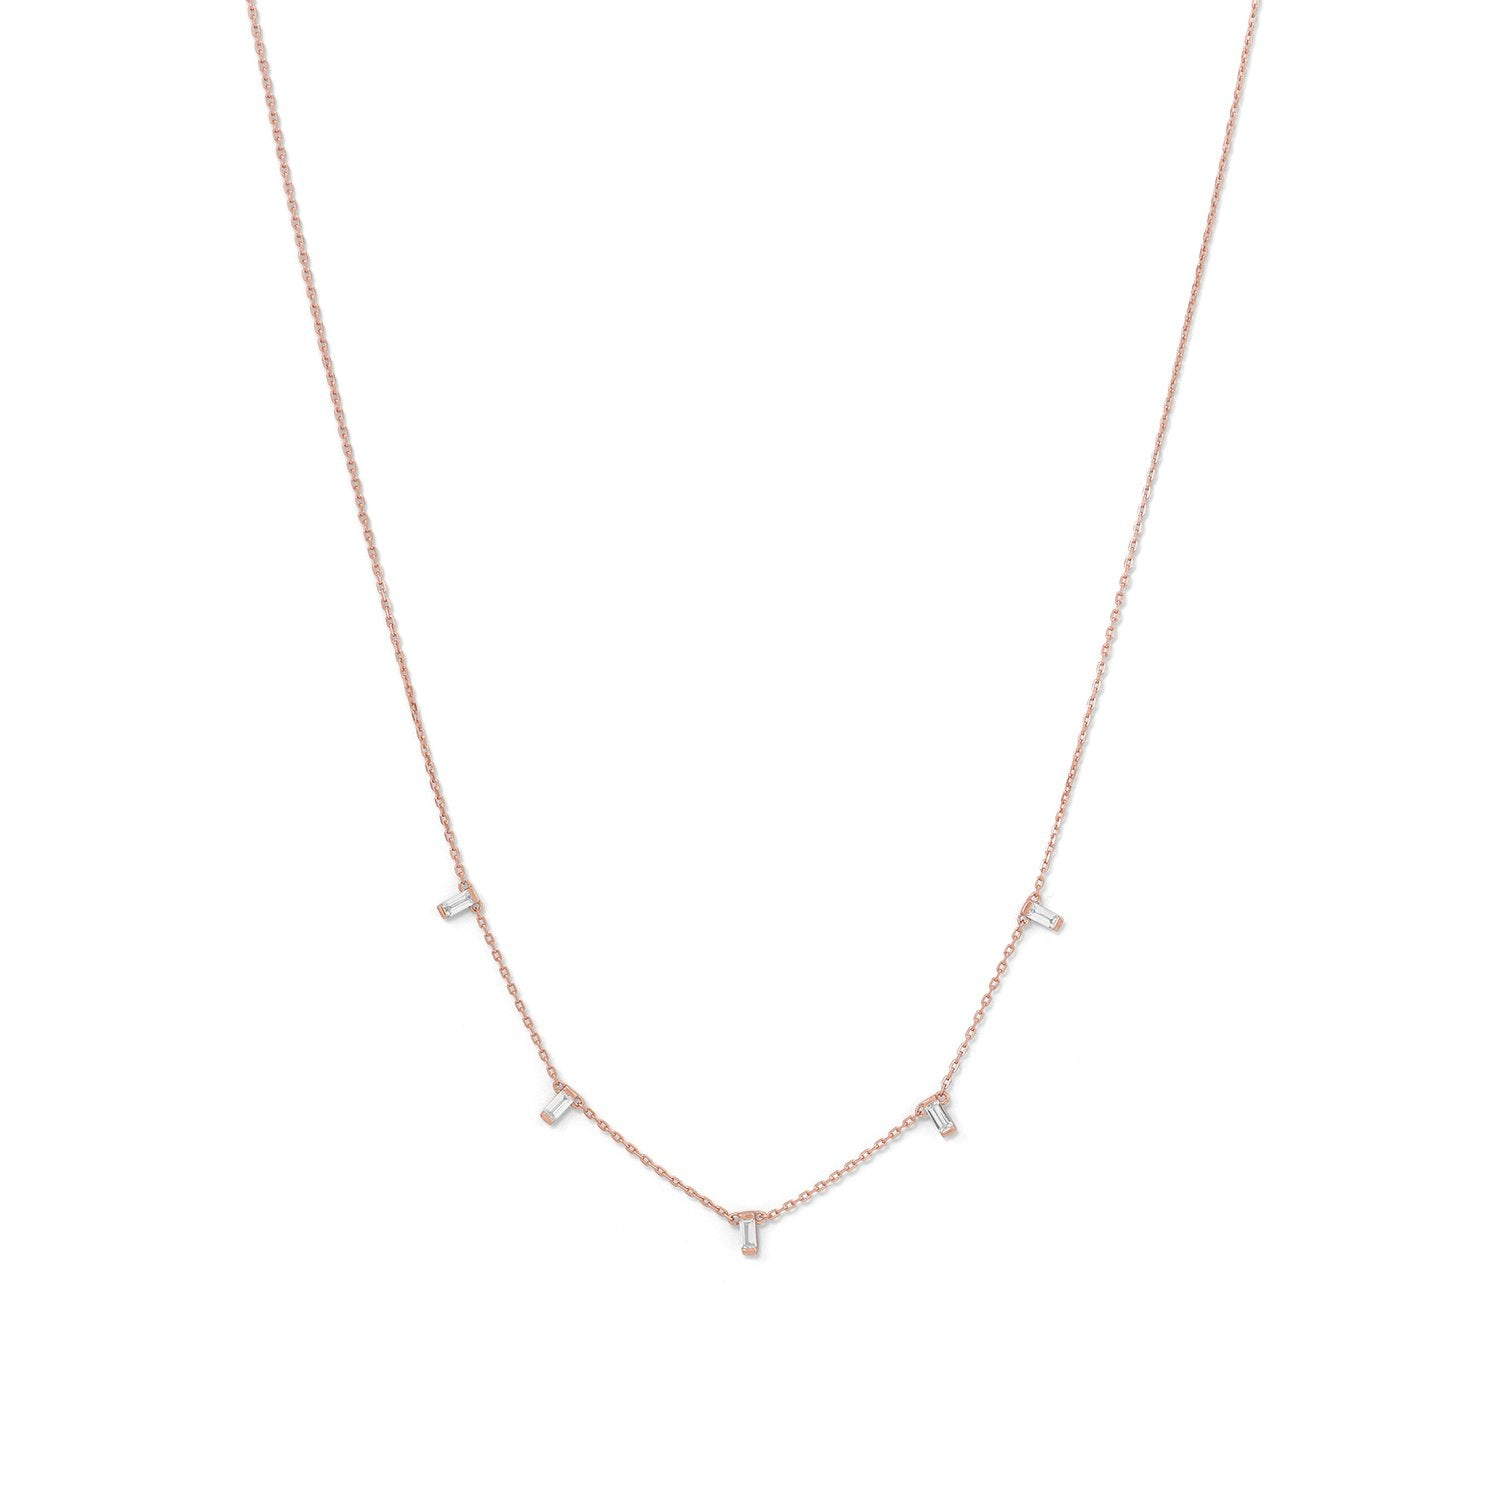 Rose Gold Plated Necklace, Necklaces, [GLITIC], [Personalized_Jewelry], [Vegan_Bags]